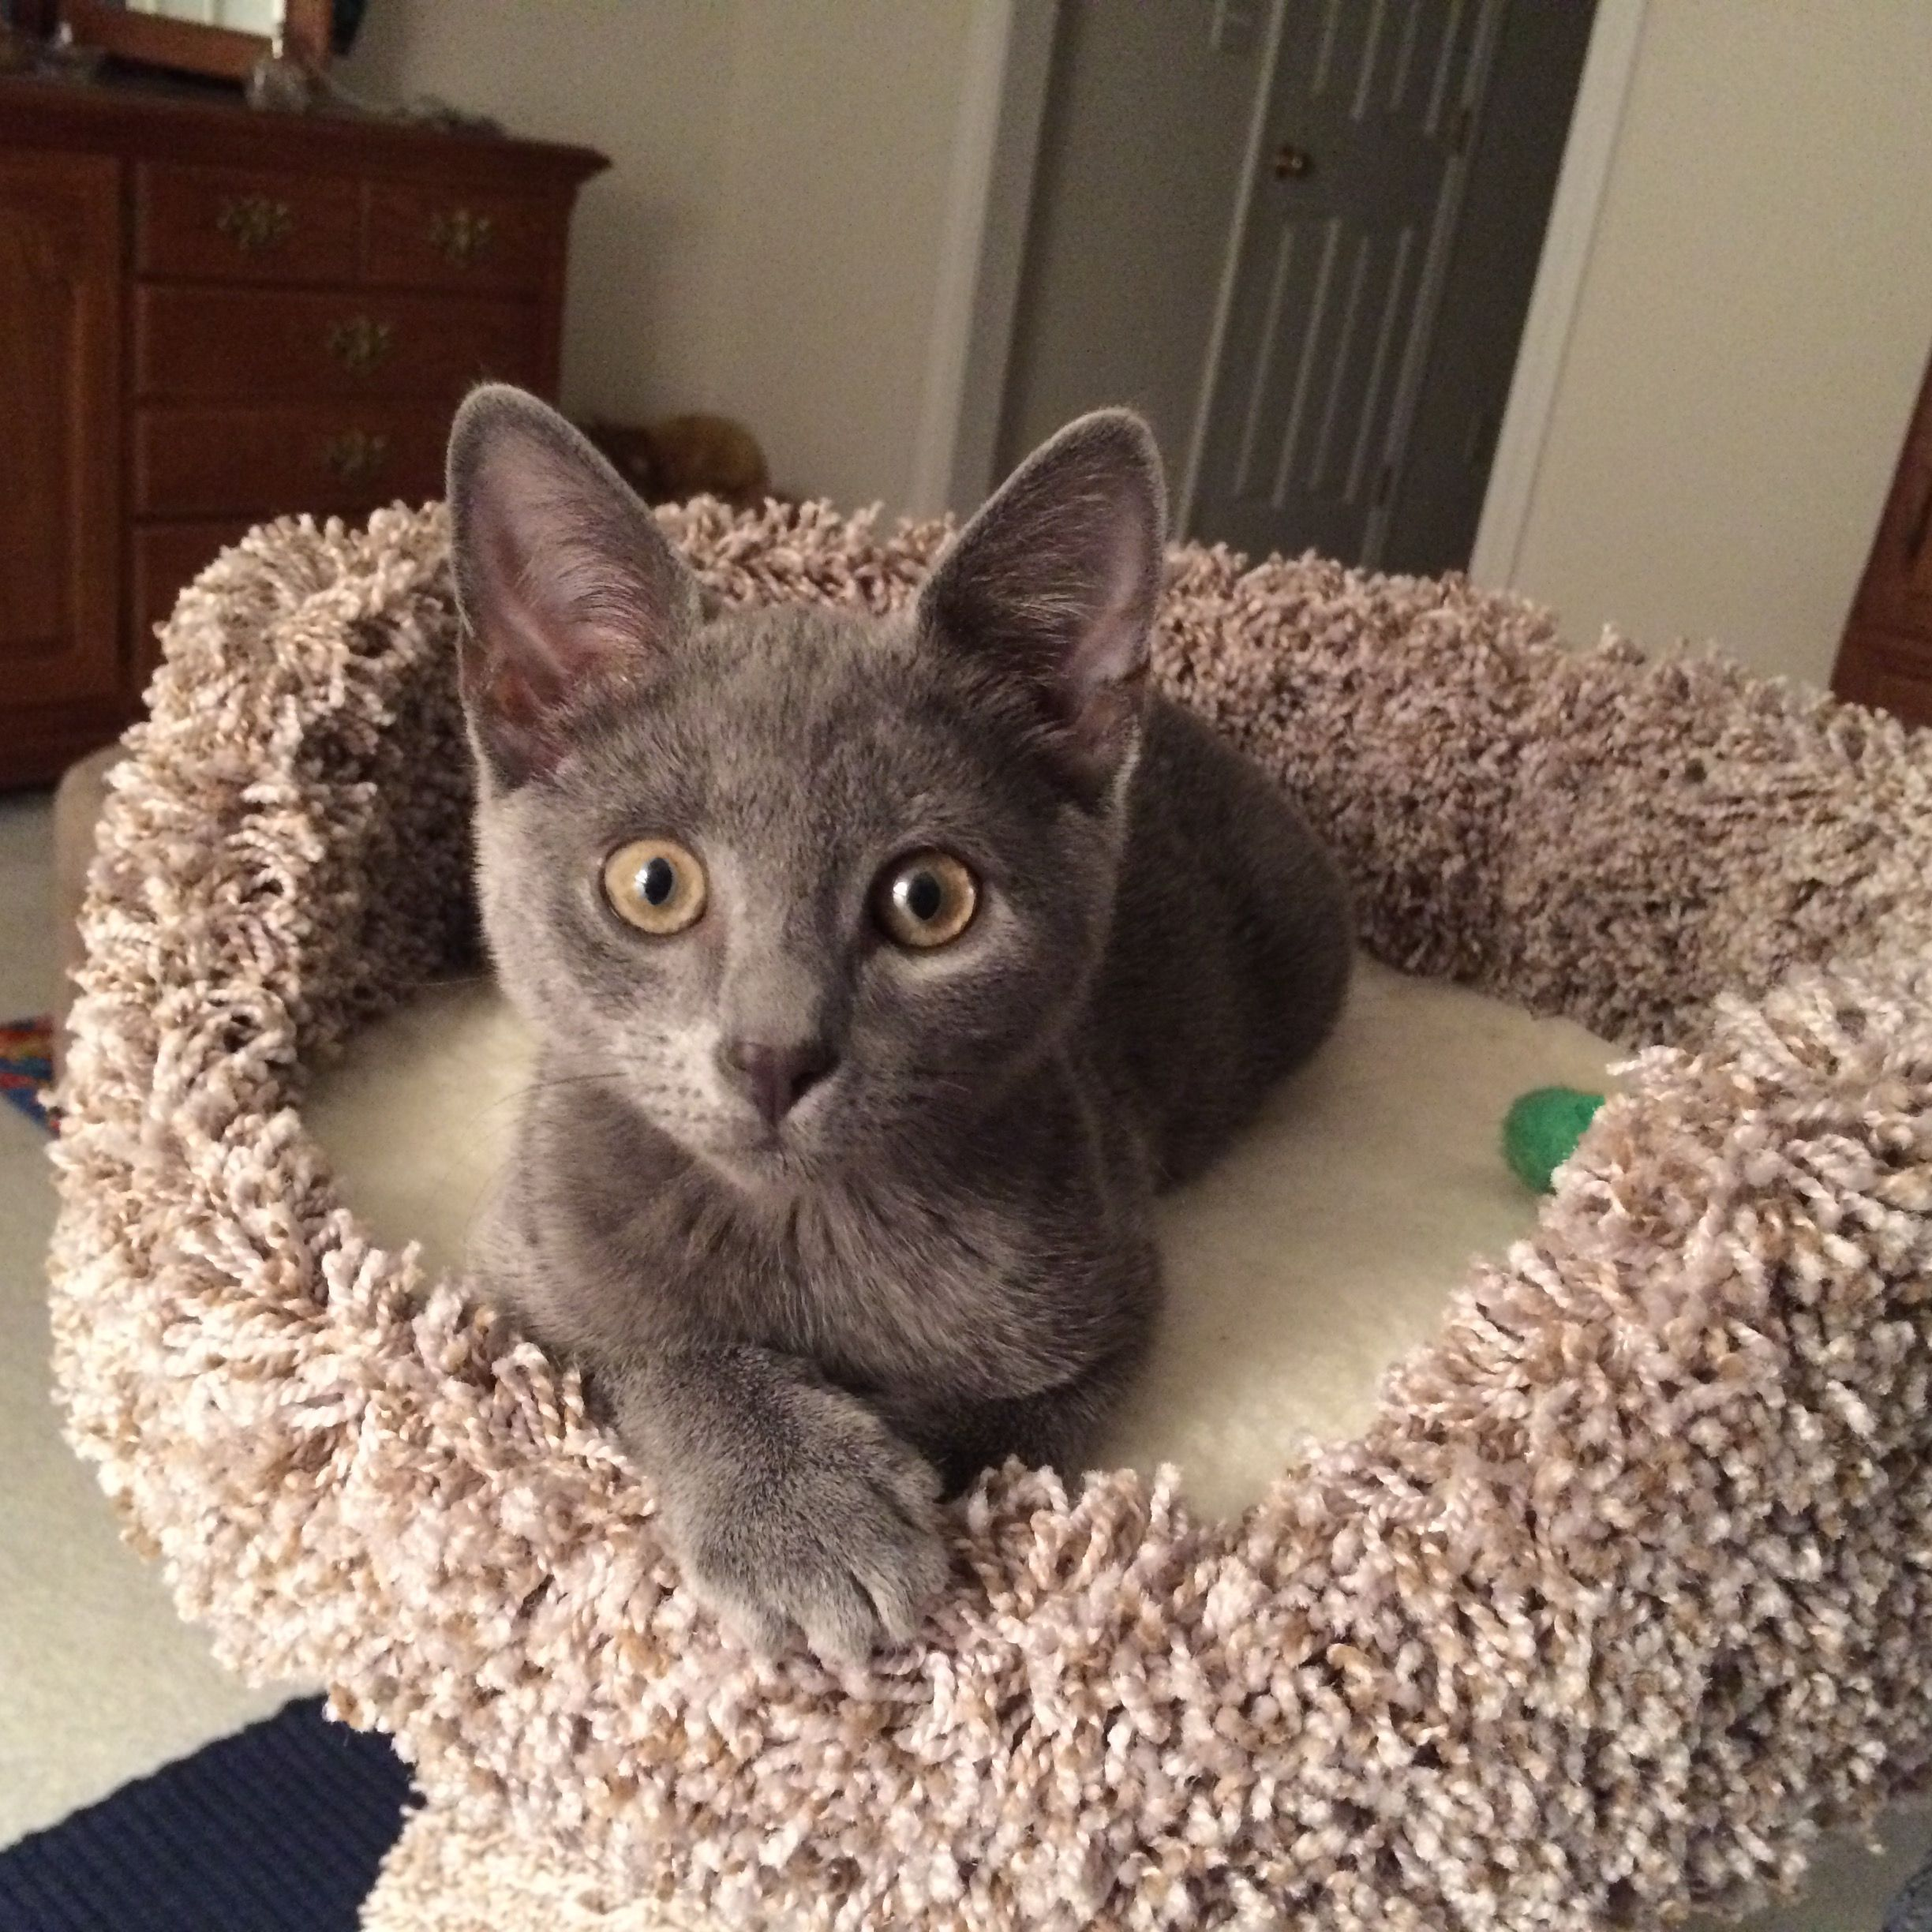 Rolo Now Buster Update He Has Settled In Beautifully Buster Is The Sweetest Most Active Friendliest Kitten I Have E Dog Adoption Great Cat Humane Society